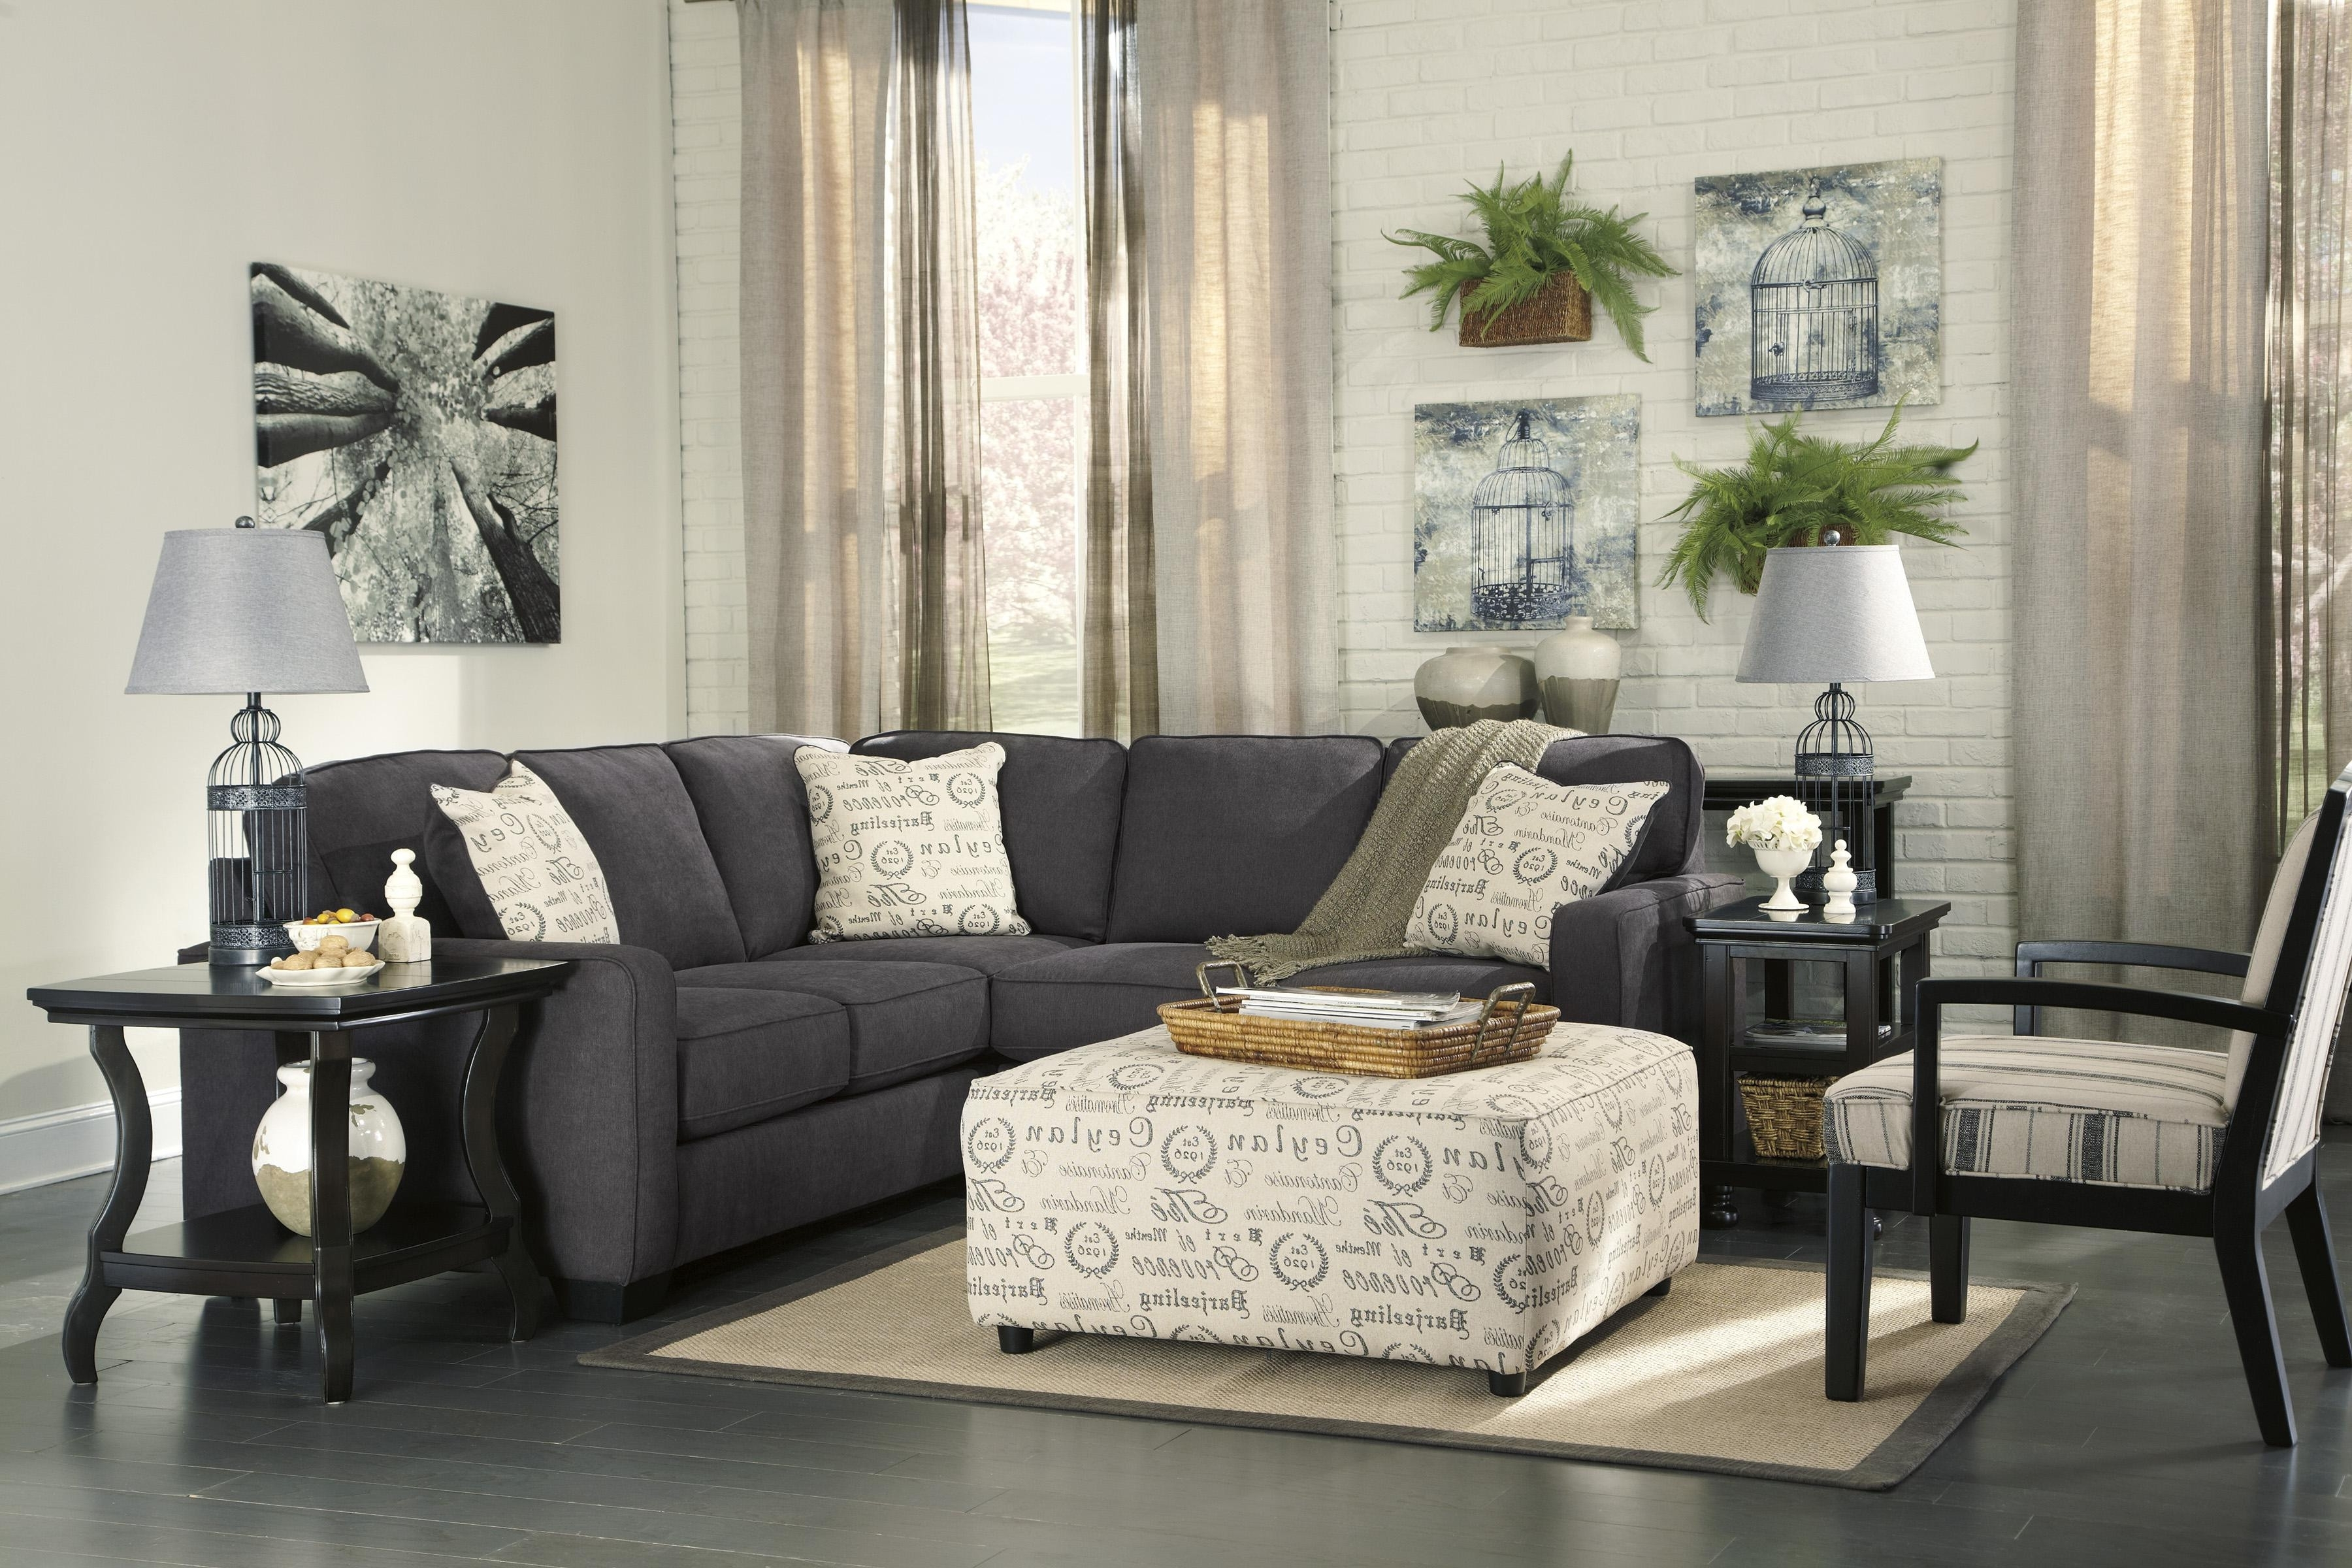 Ivan Smith Sectional Sofas With Regard To Favorite Ivan Smith Furniture Greenville Tx Creative Locations Decoration (View 9 of 20)